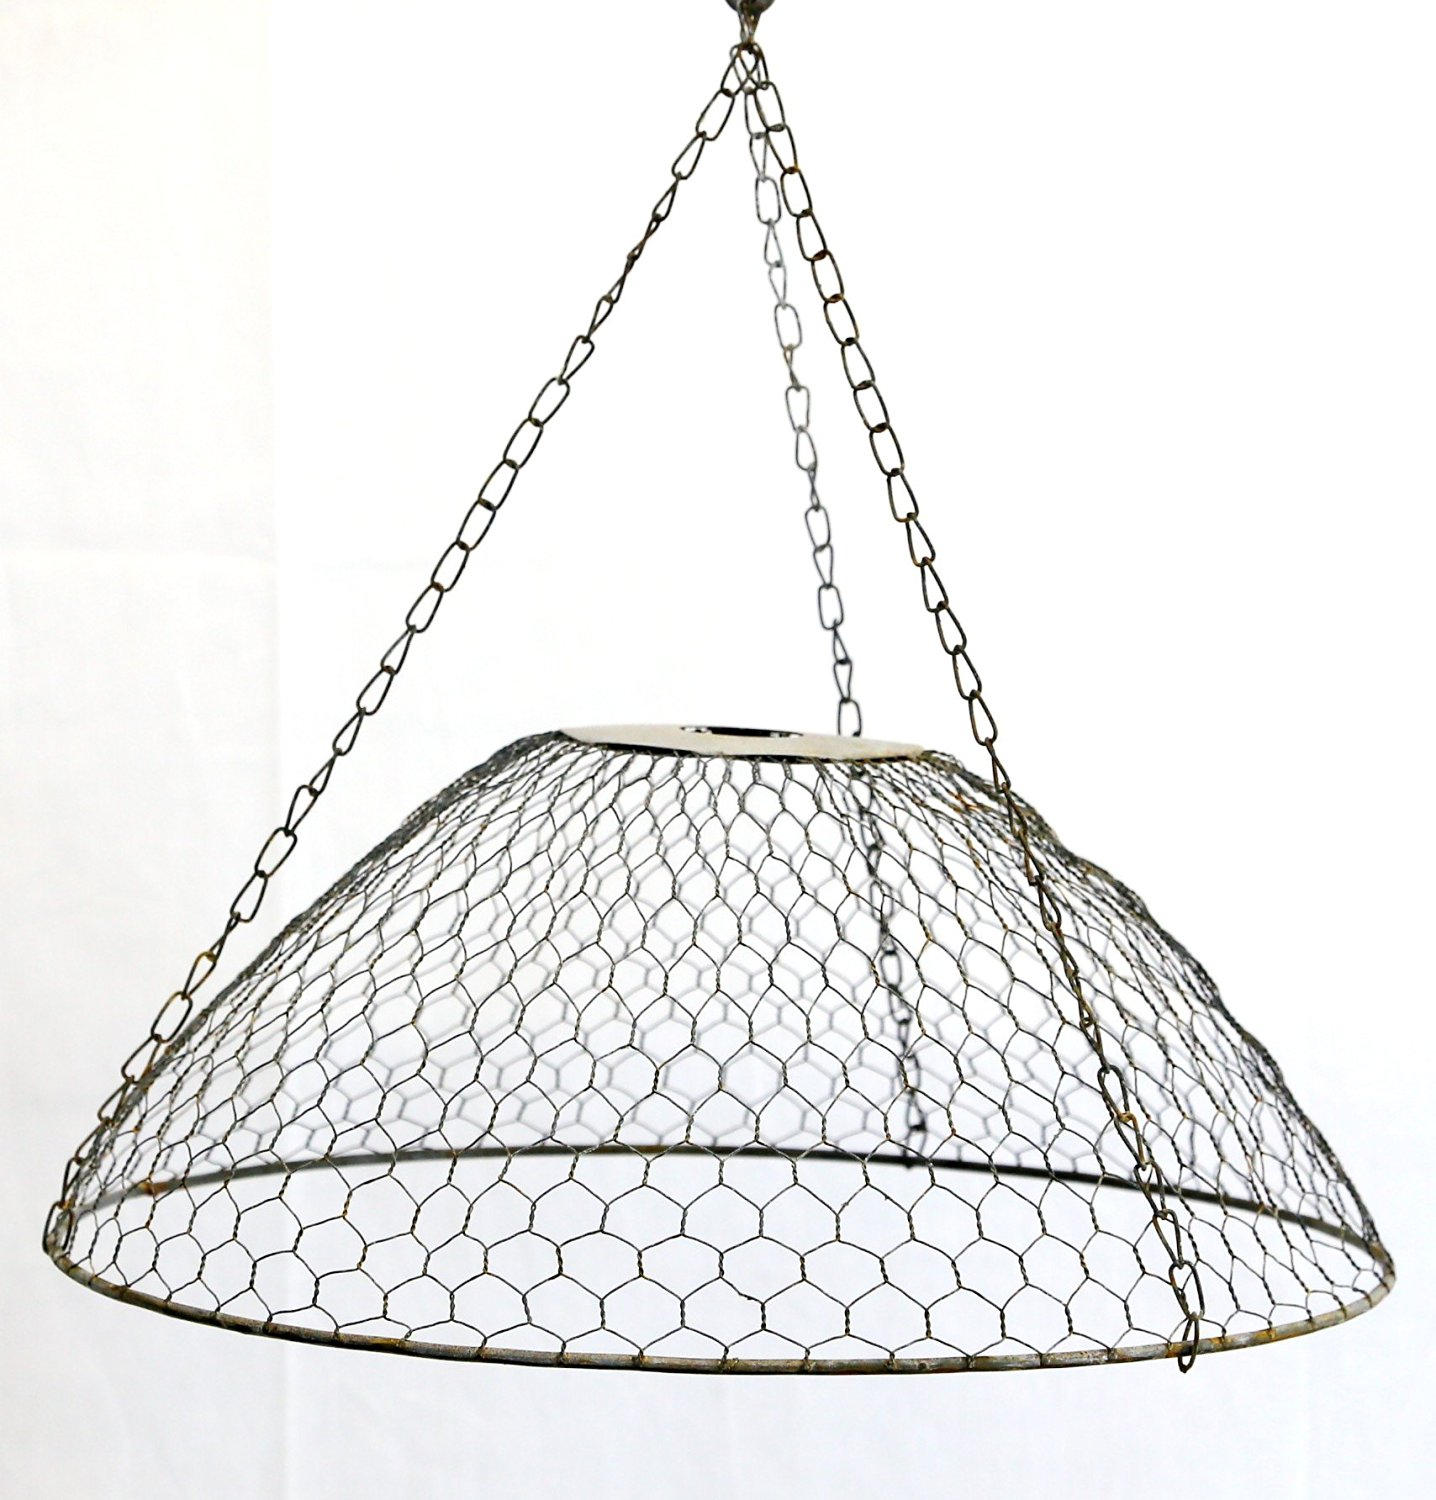 Buy Gray Zinc Chicken Wire Lamp Shade in Cheap Price on Alibaba.com